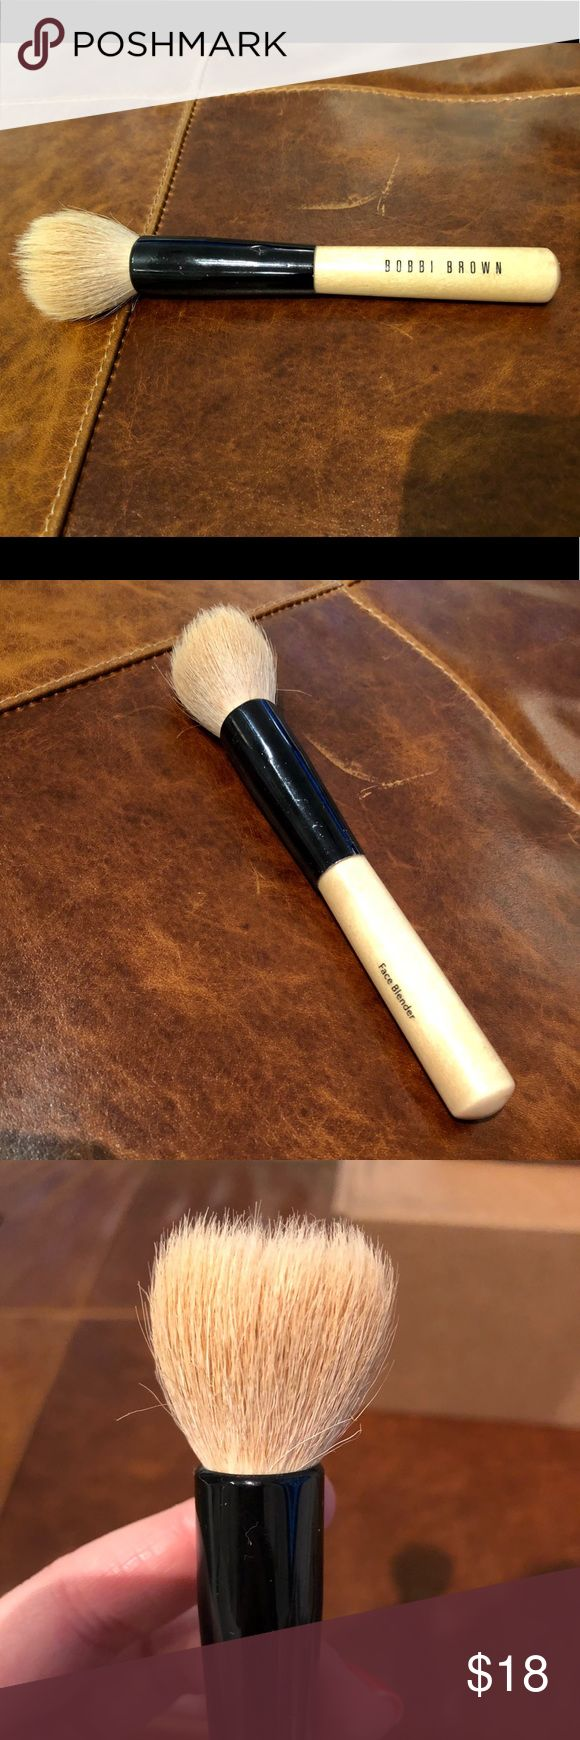 Bobbi Brown Face Blender Brush Good used condition! Still in great shape, would just need to be brush cleaned! Awesome brush. Bobbi Brown Makeup Brushes & Tools